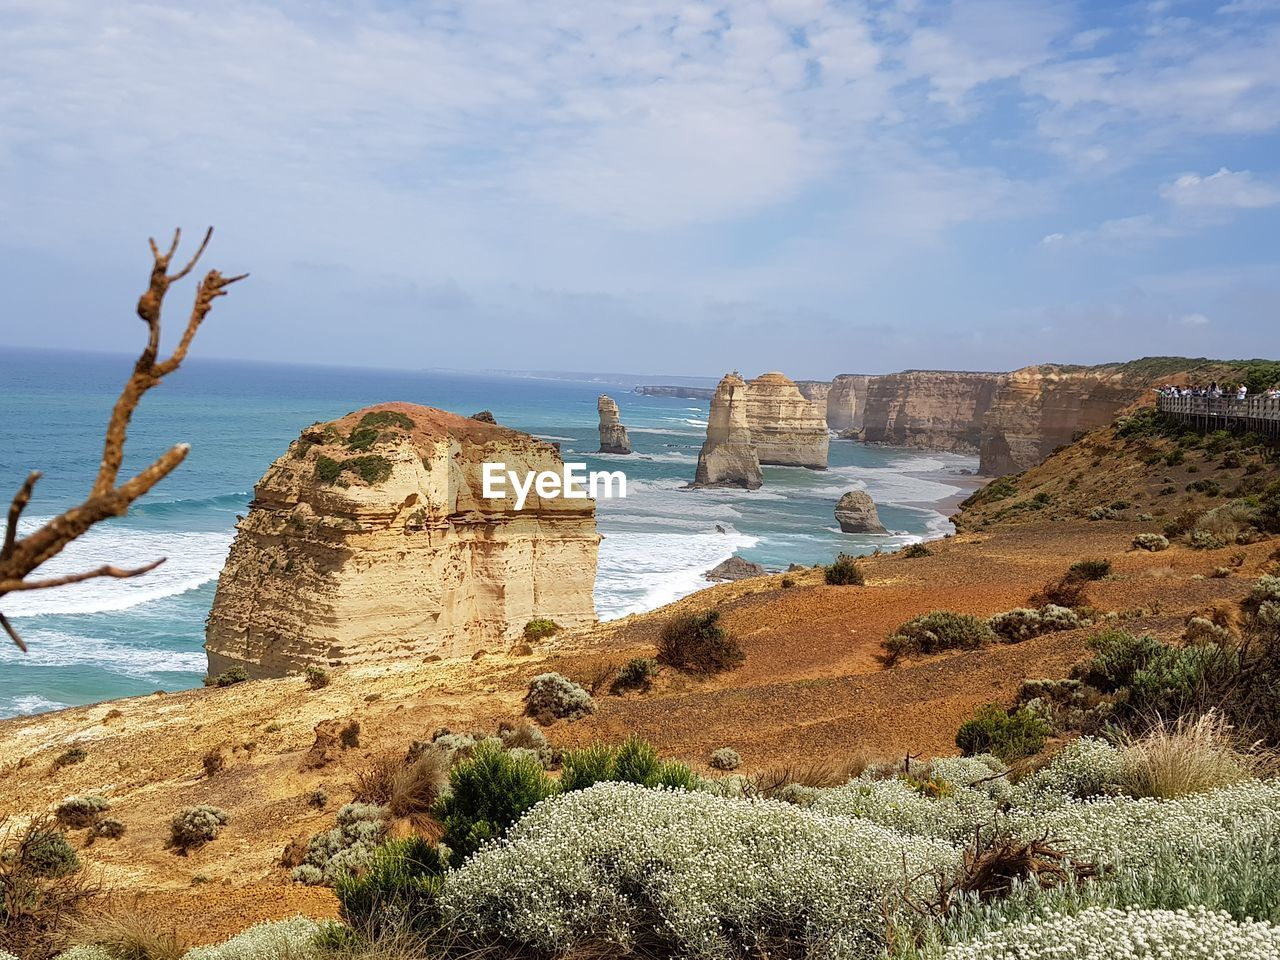 SCENIC VIEW OF SEA AGAINST ROCK FORMATION